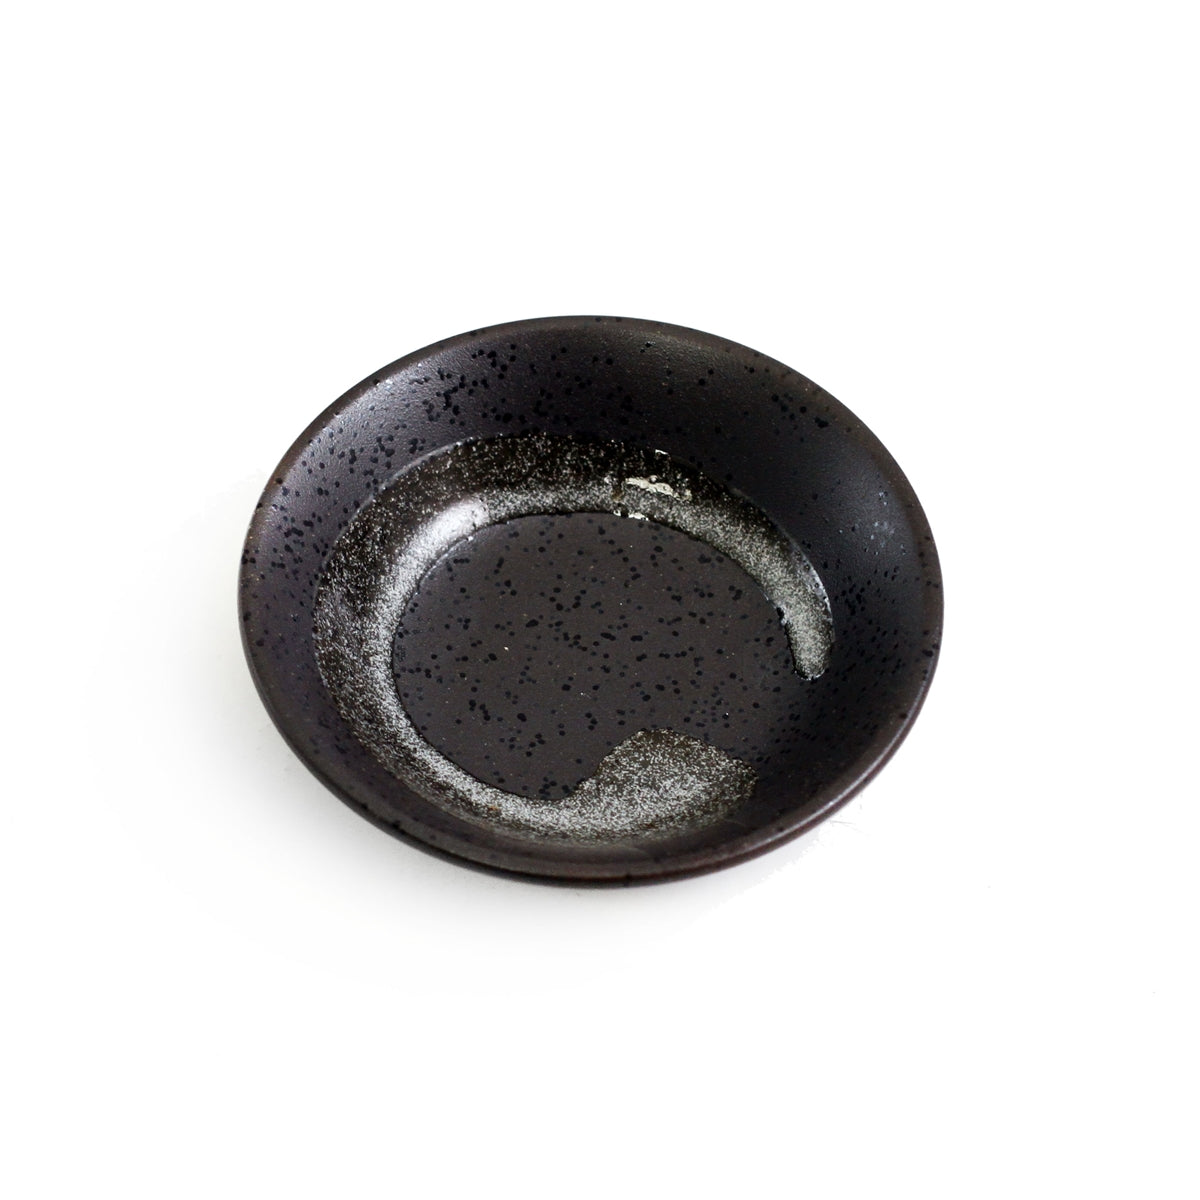 "Black Brushstroke Kobachi Bowl 2.5 fl oz / 3.62"" dia"